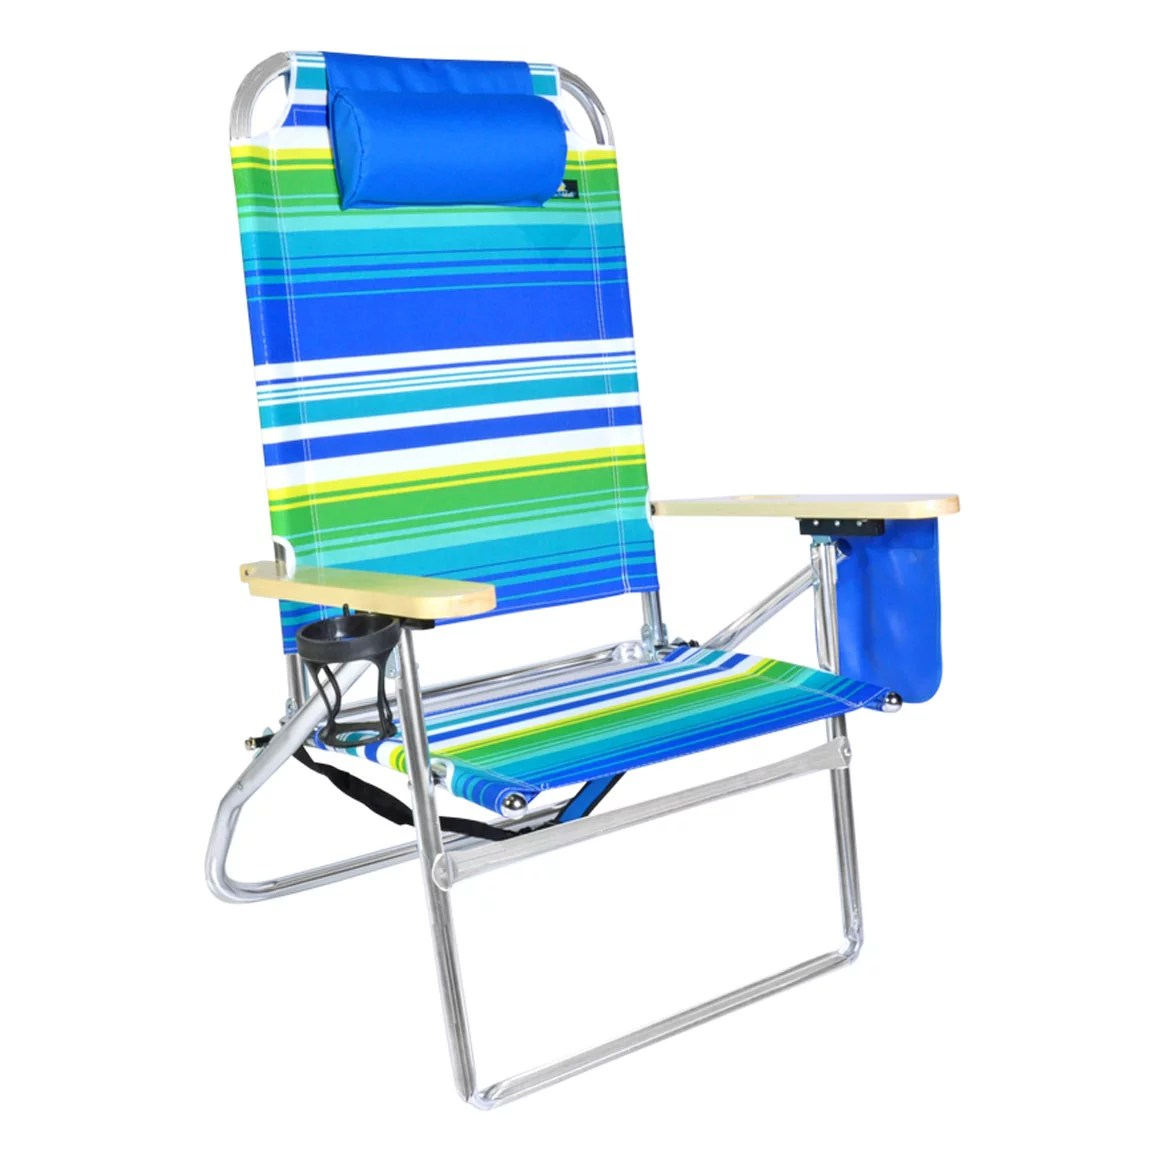 Beach Chair With Cup Holder Extra Large High Seat 3 Position Heavy Duty Beach Chair